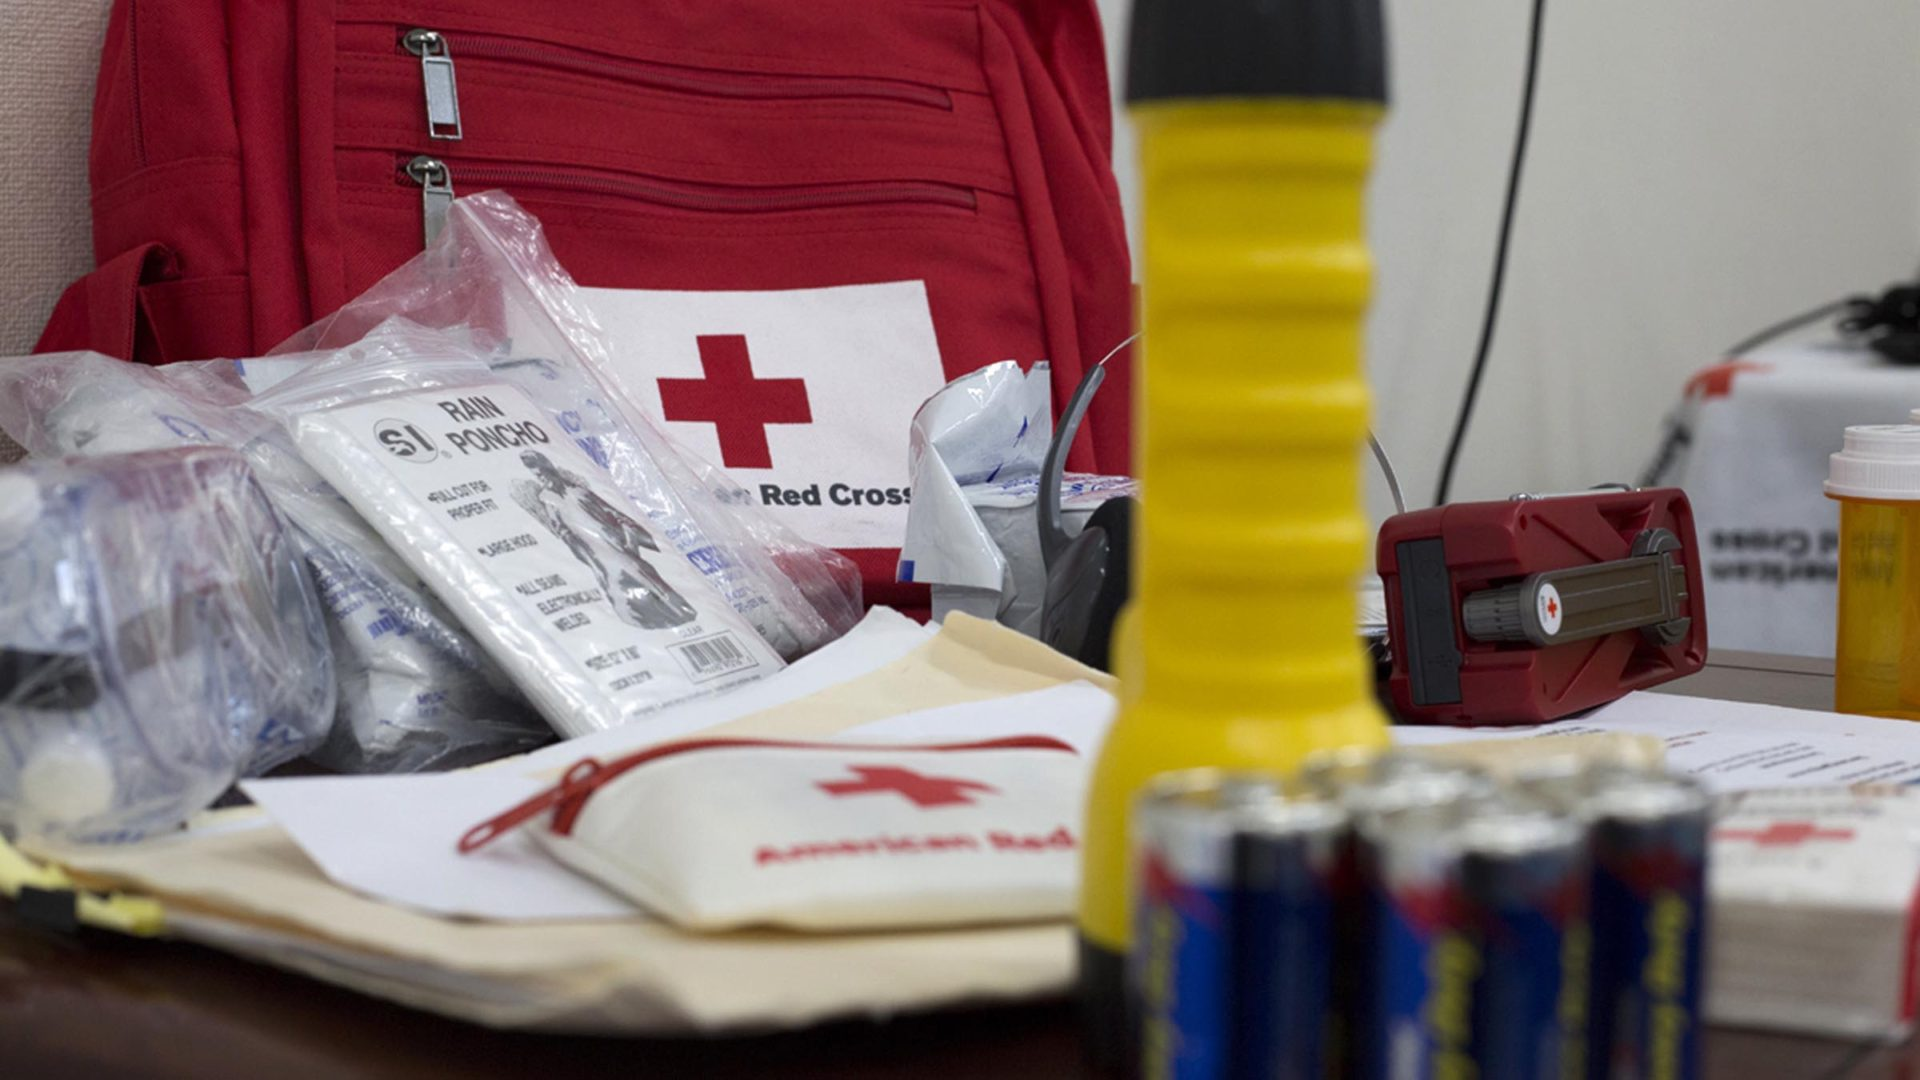 American Red Cross support for Military families